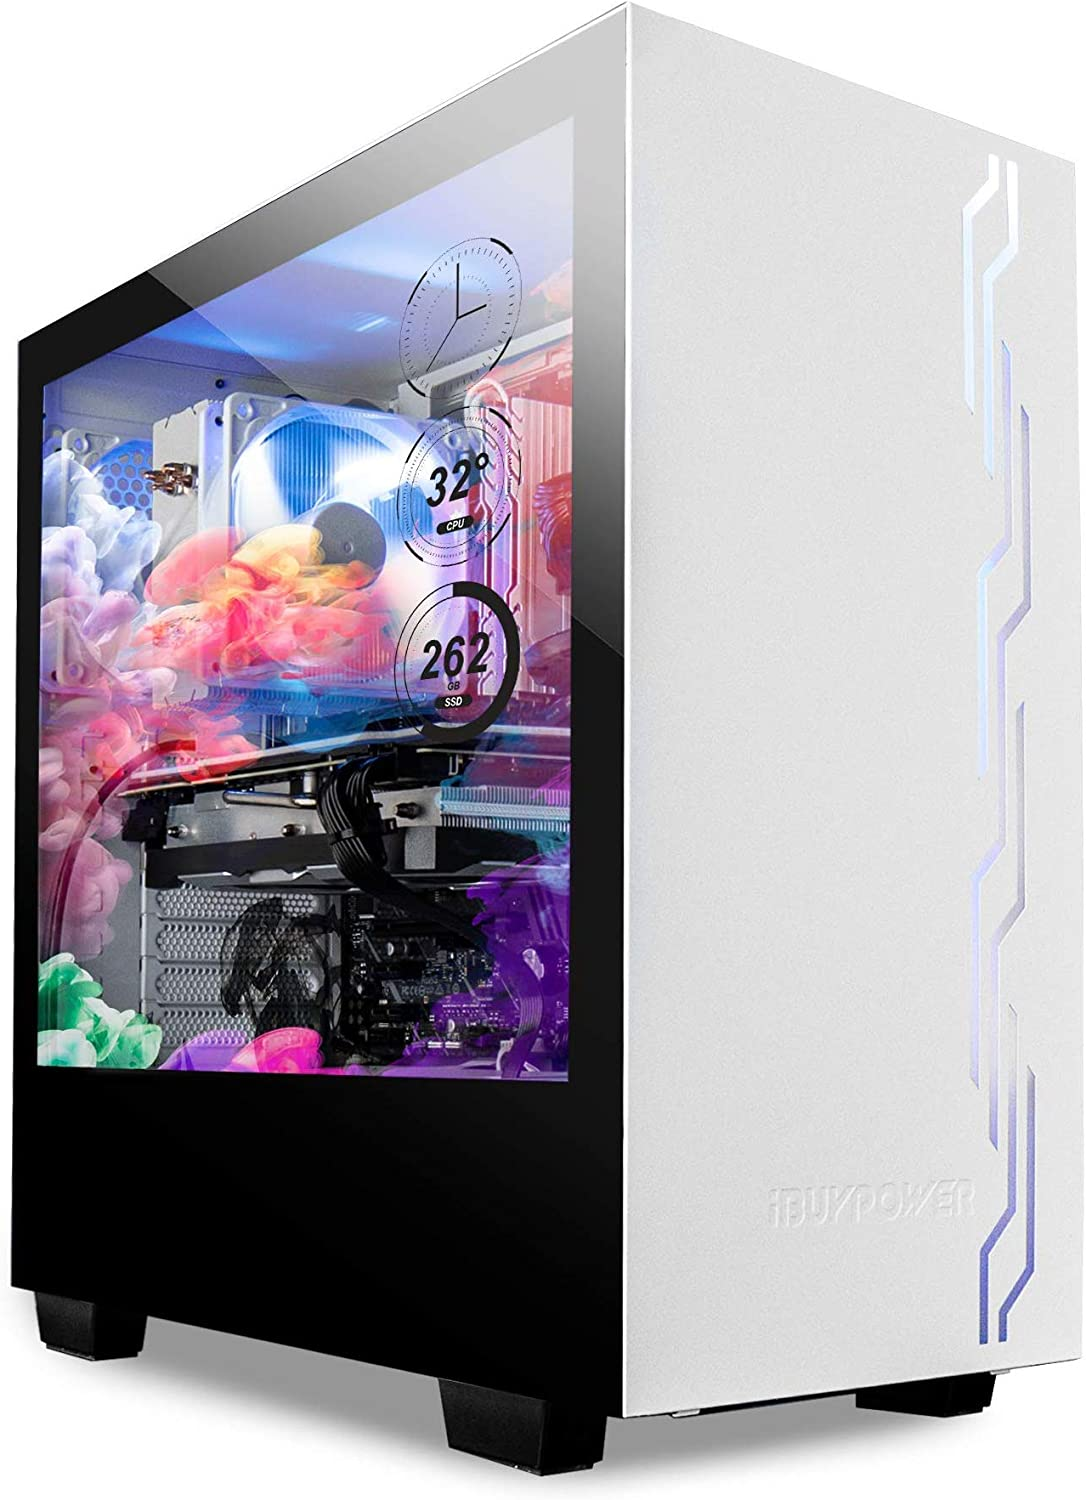 "iBUYPOWER Snowblind S 19"" Translucent Customizable Side-Panel LCD Display 1280 x 1024 Resolution Mid-Tower Desktop Computer Gaming Case 3 x 120mm Fans SECC Steel, White"